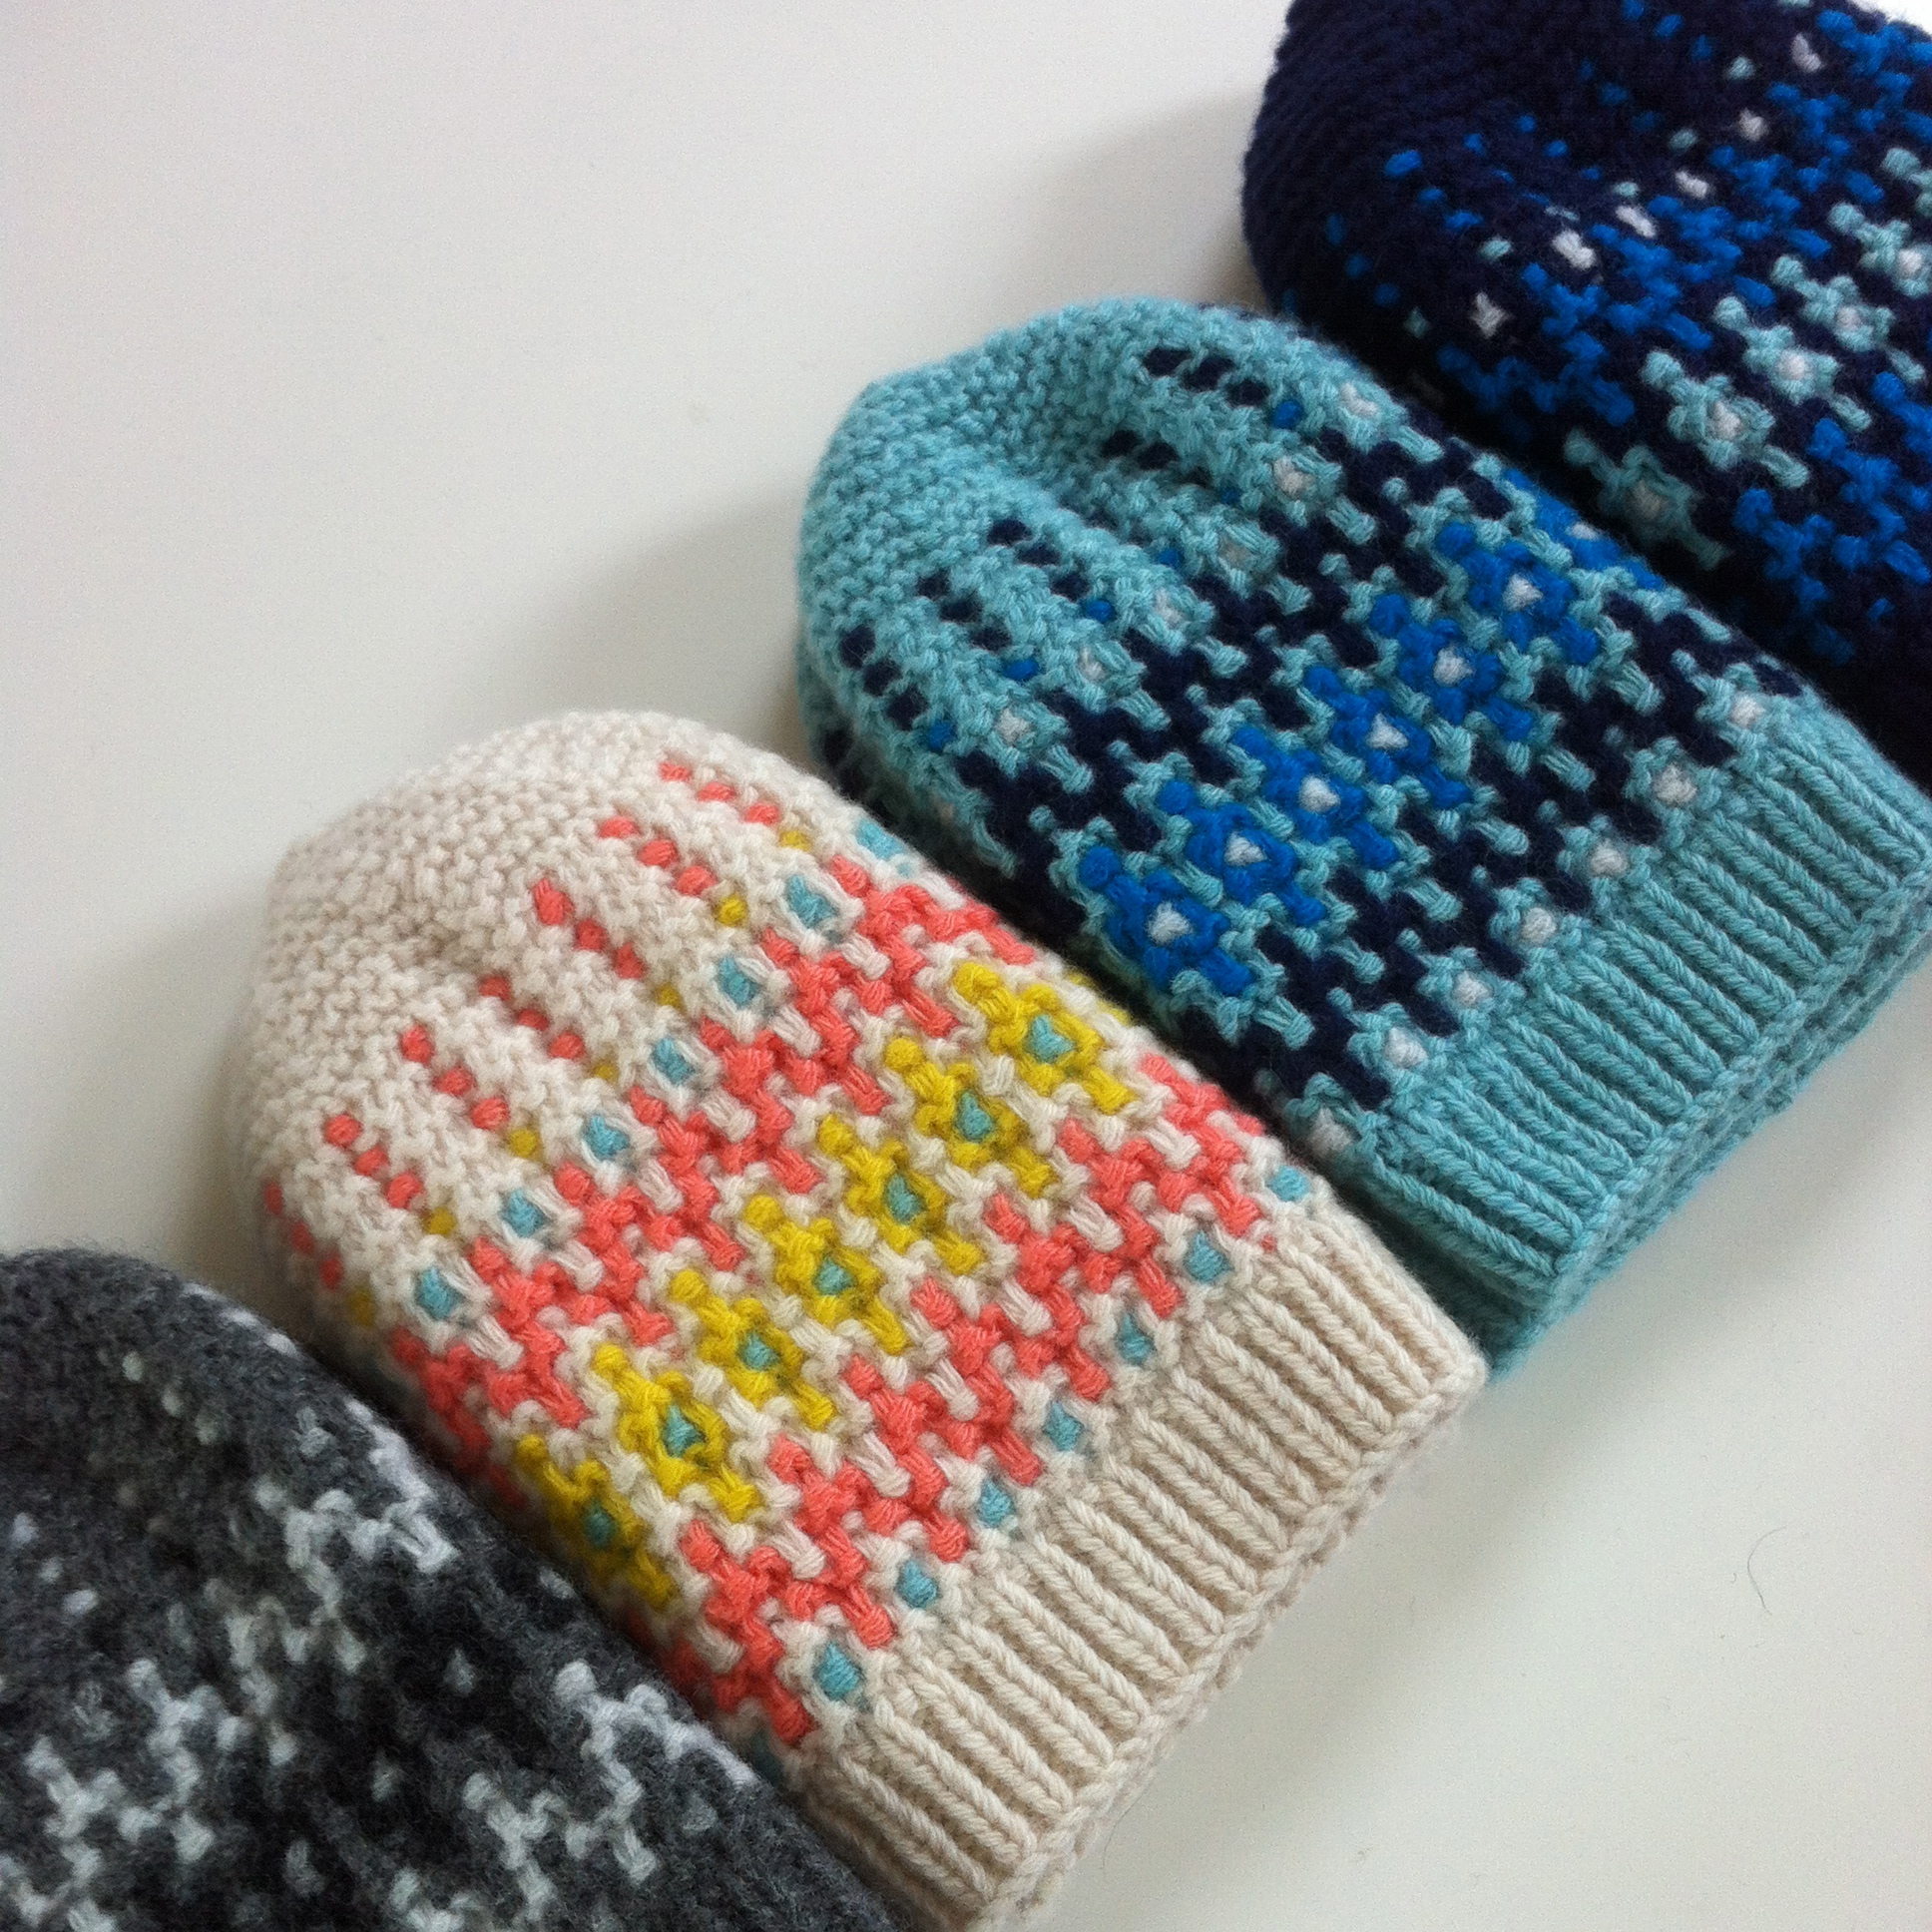 Eildon hand knitted hats in luxurious soft wool